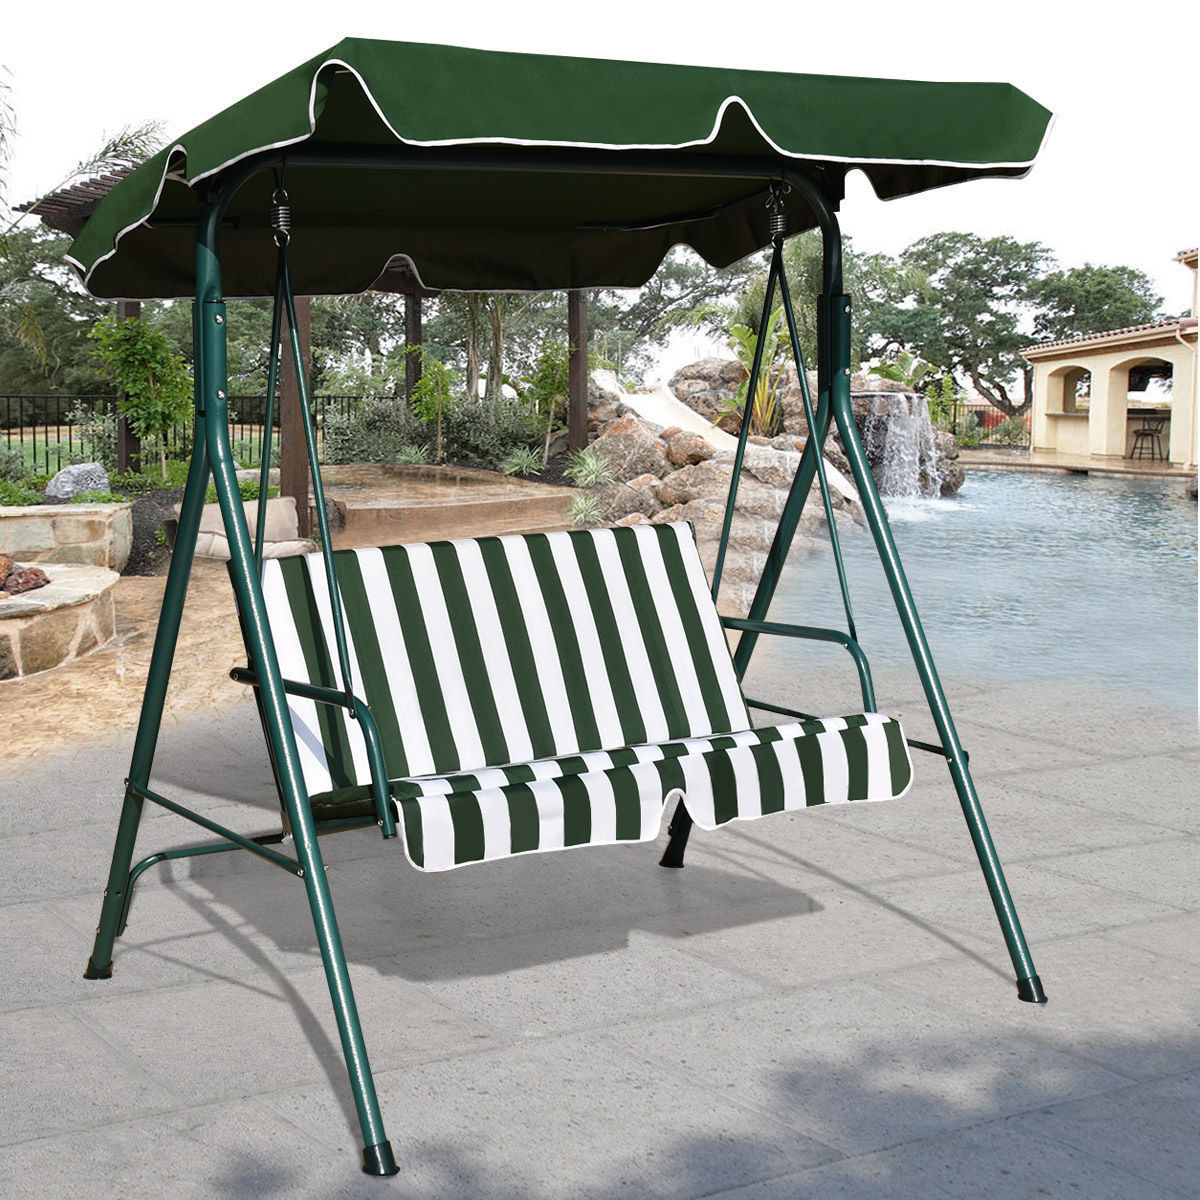 Outdoor Patio Canopy Swing Cushioned Chair Iron 2 Person Yard Furniture  Green Intended For Fashionable 2 Person Antique Black Iron Outdoor Swings (View 22 of 30)